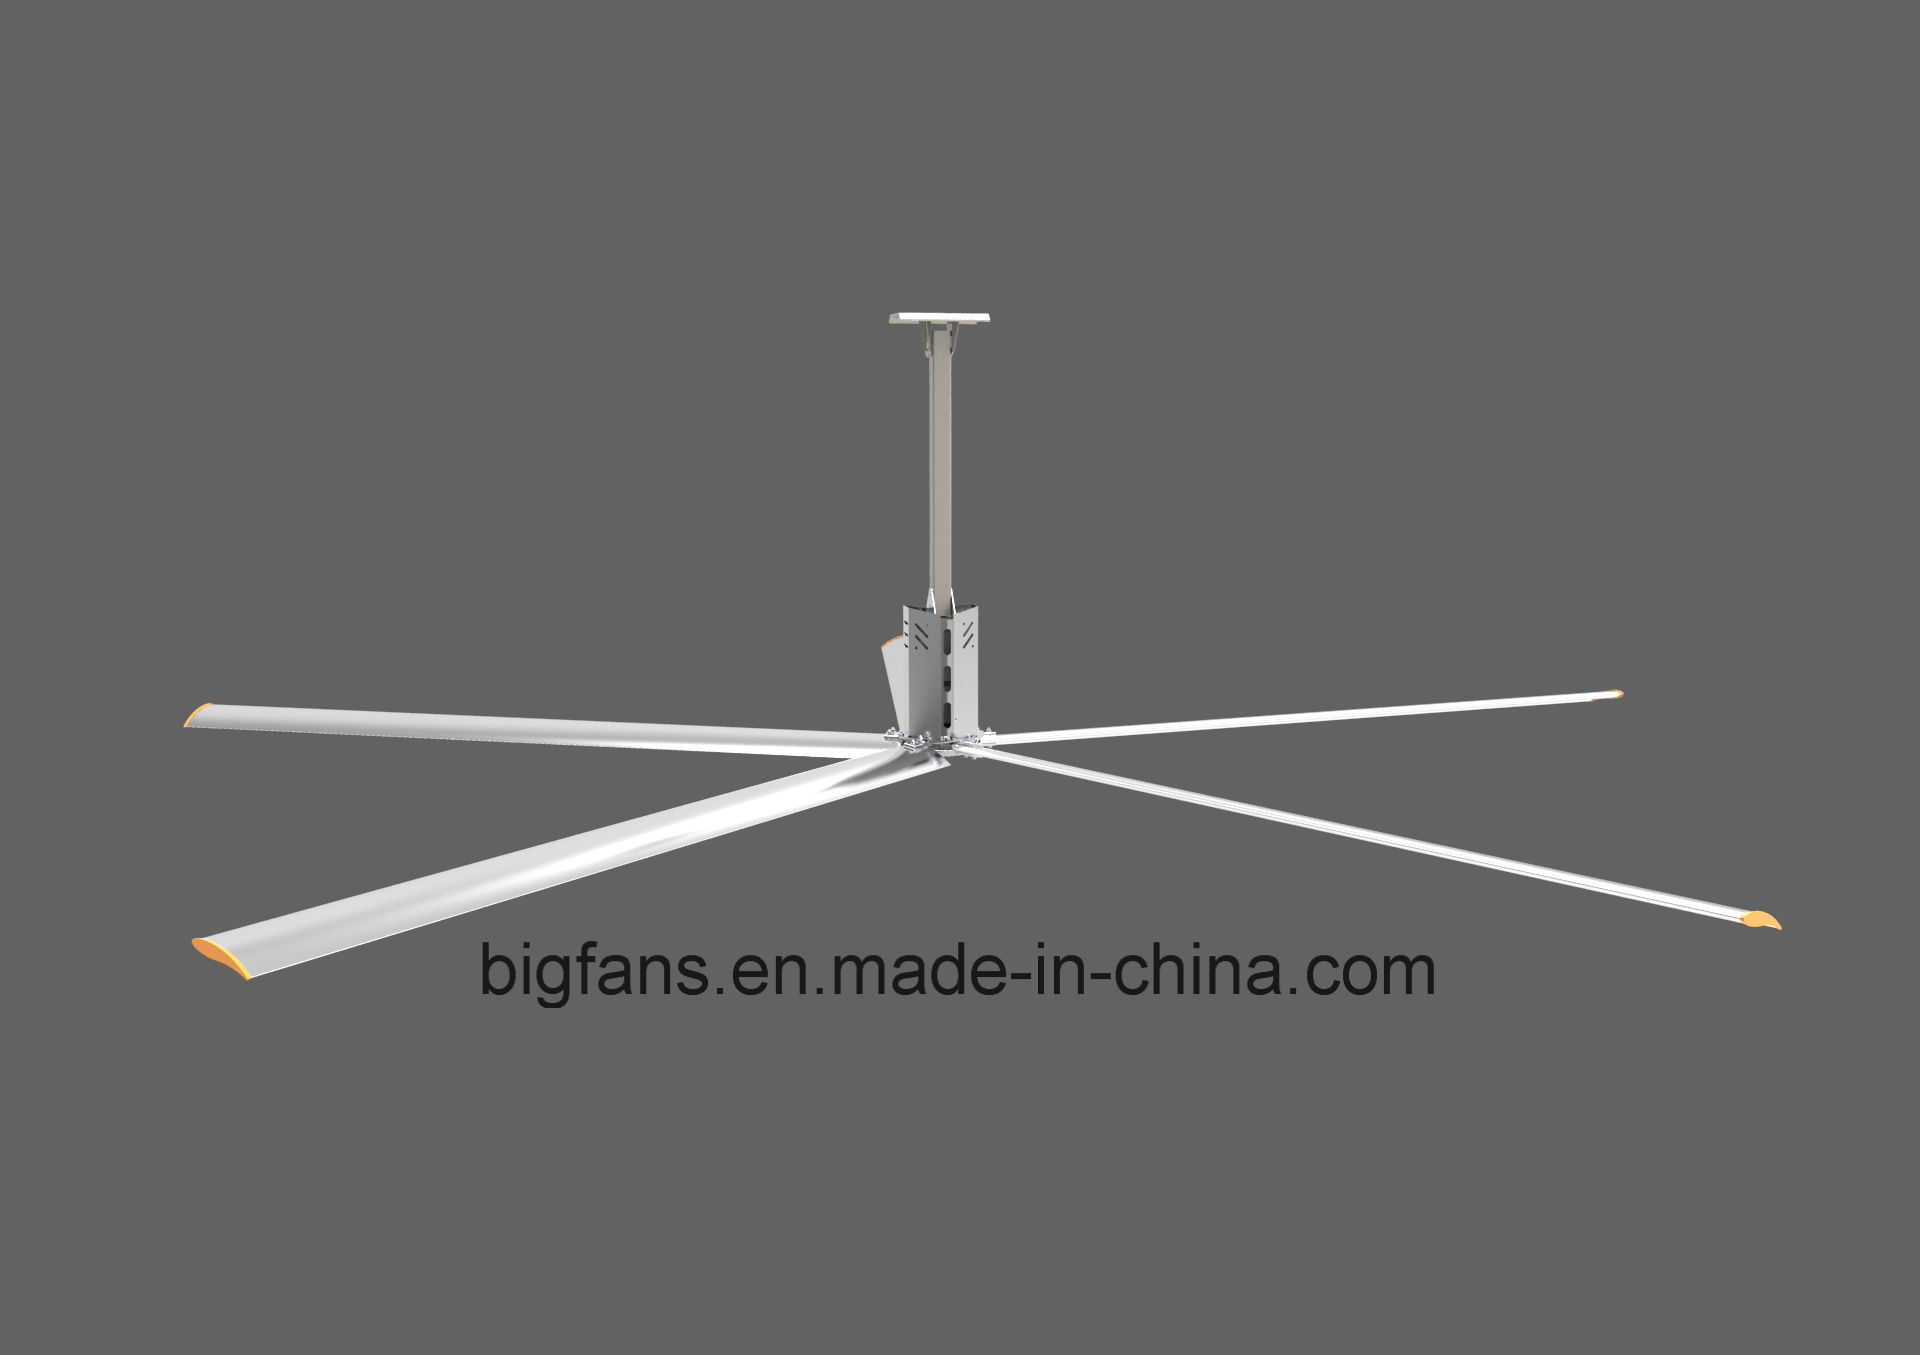 China 7 4m Diameter Metal Fan Blades Large Hvls Ceiling Malaysia